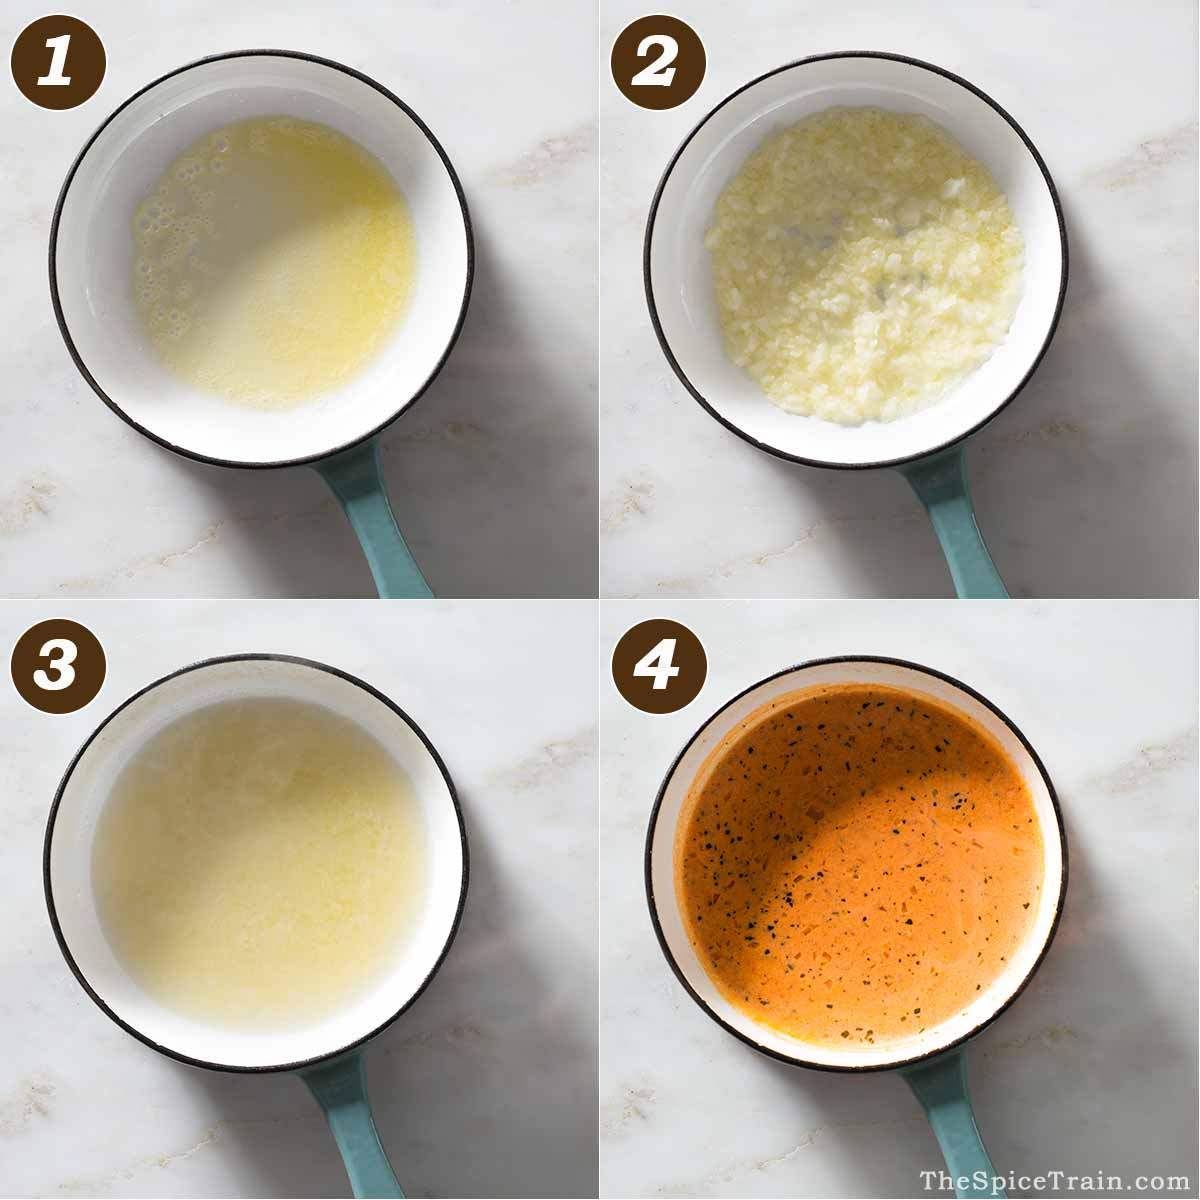 Rosemary vermouth cream sauce preparation in four steps.